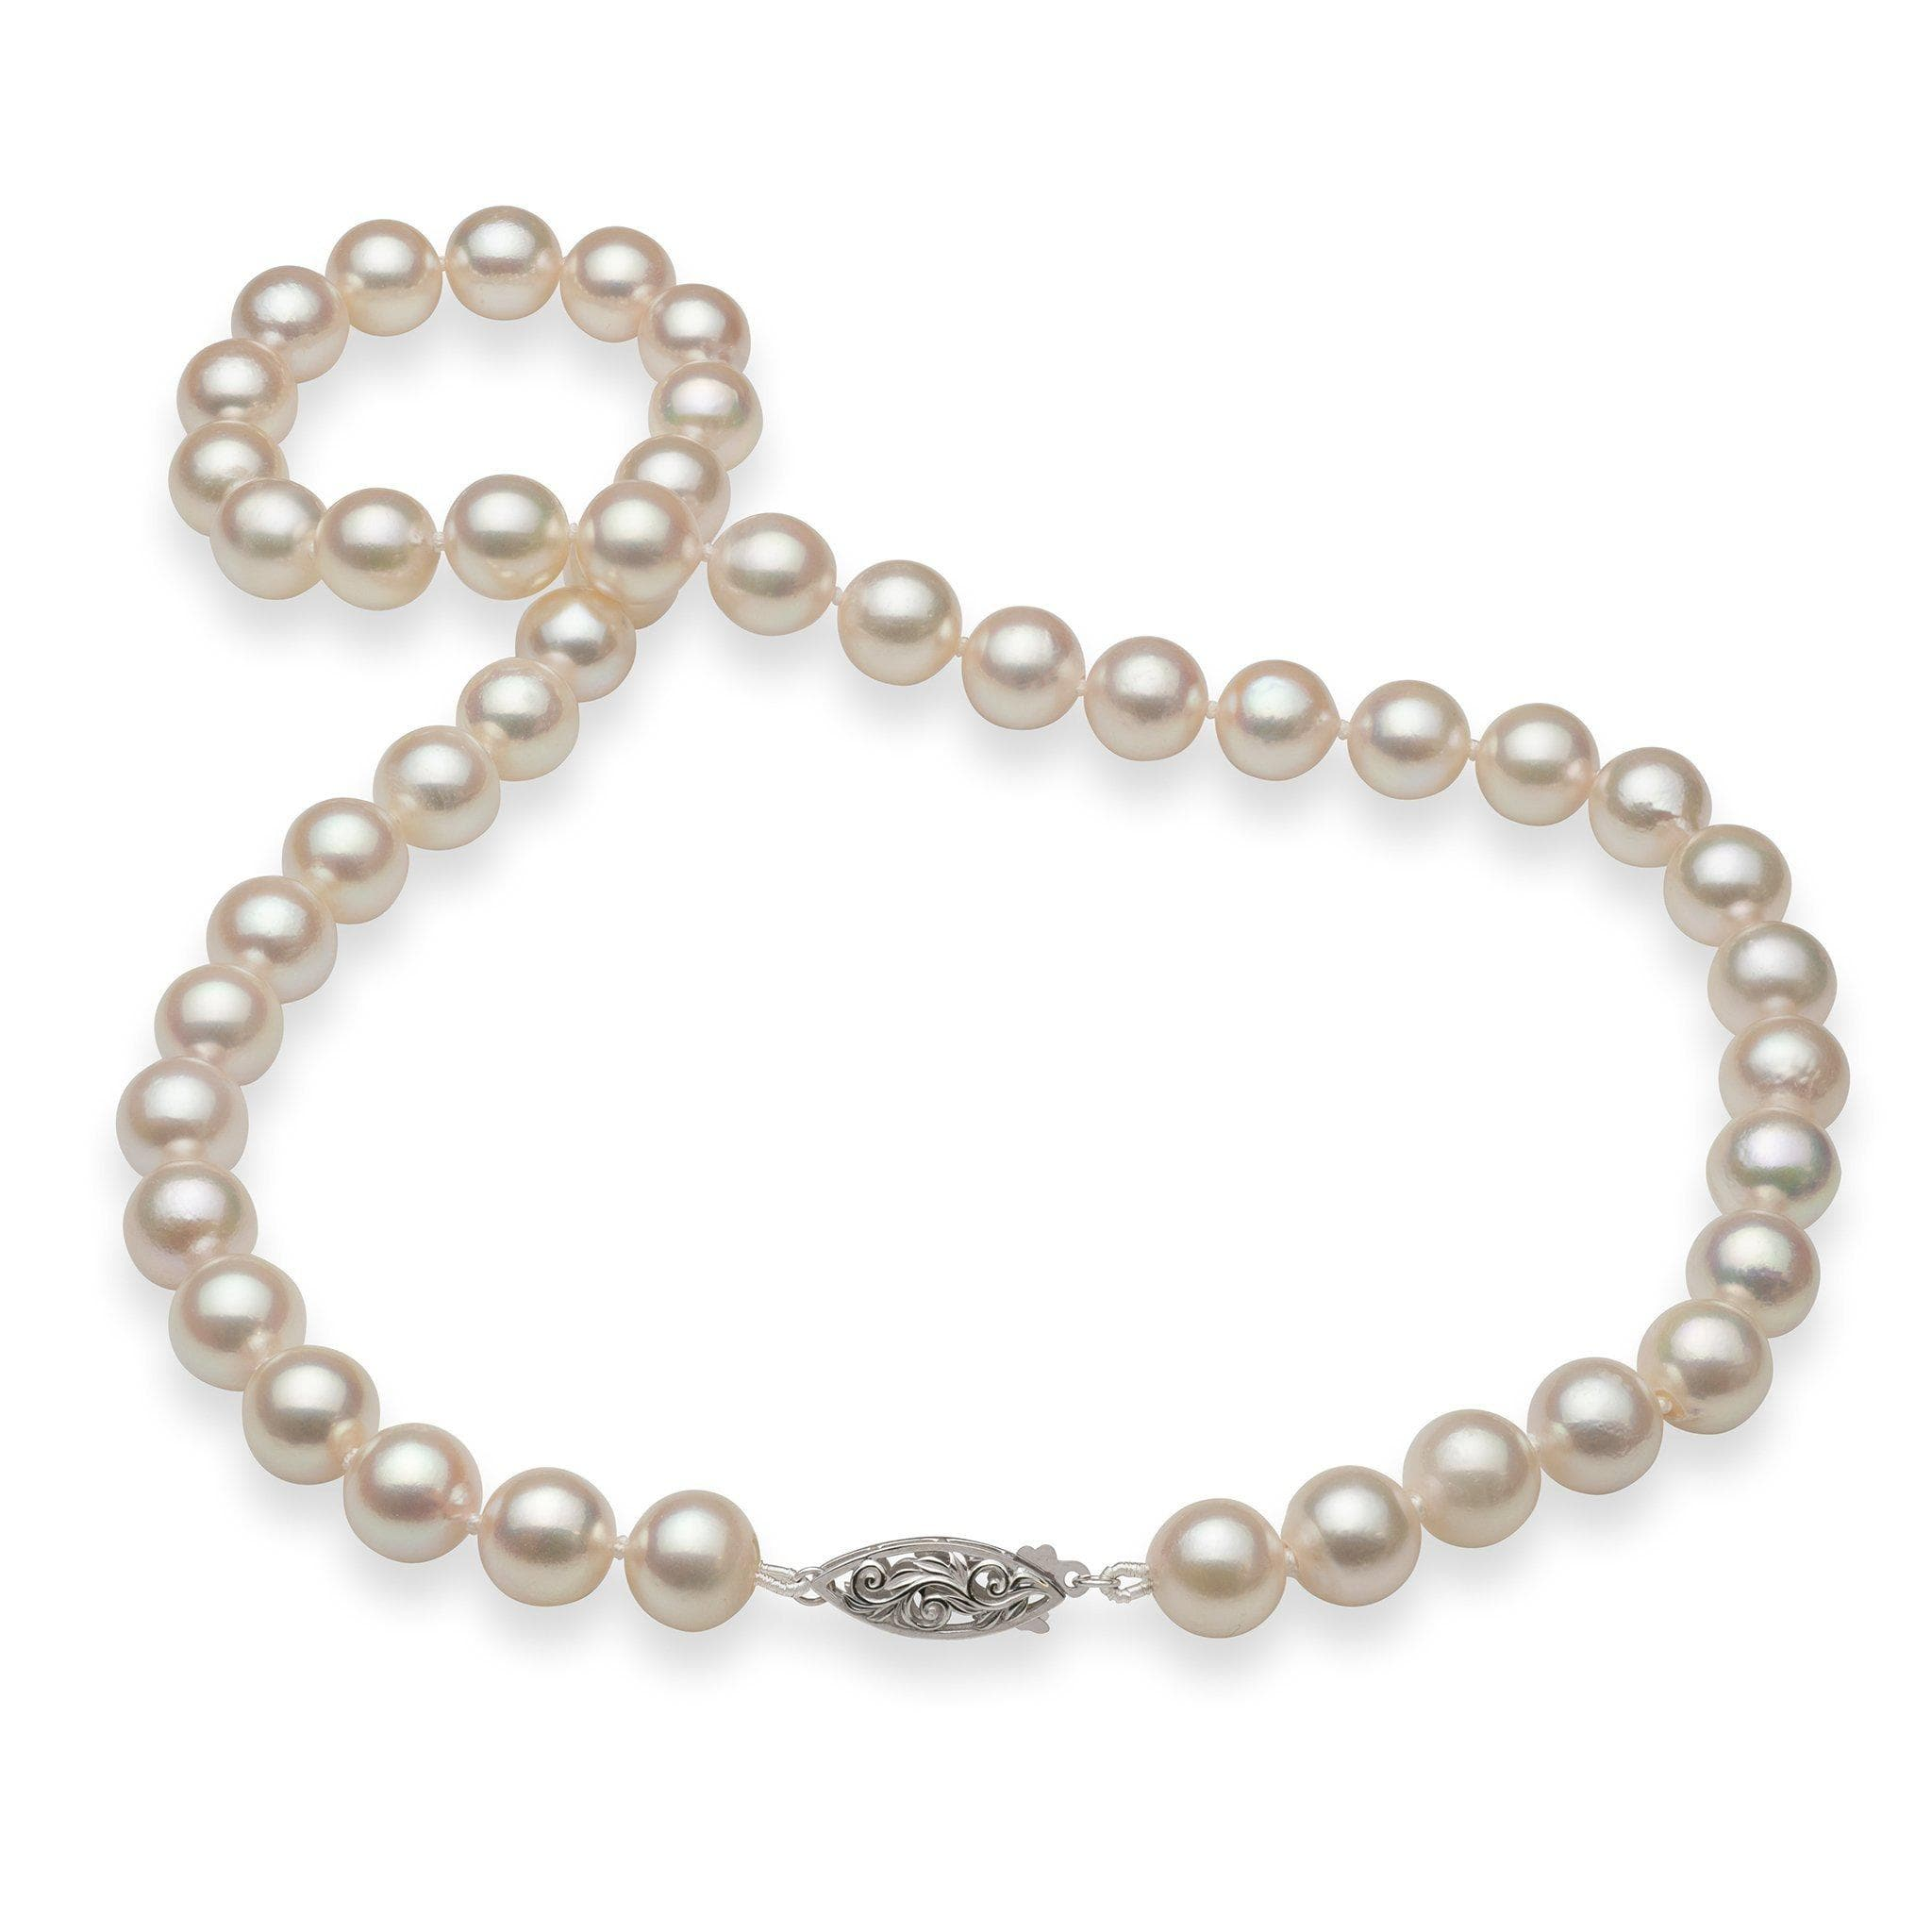 Akoya Pearl Strand with 14K White Gold Clasp